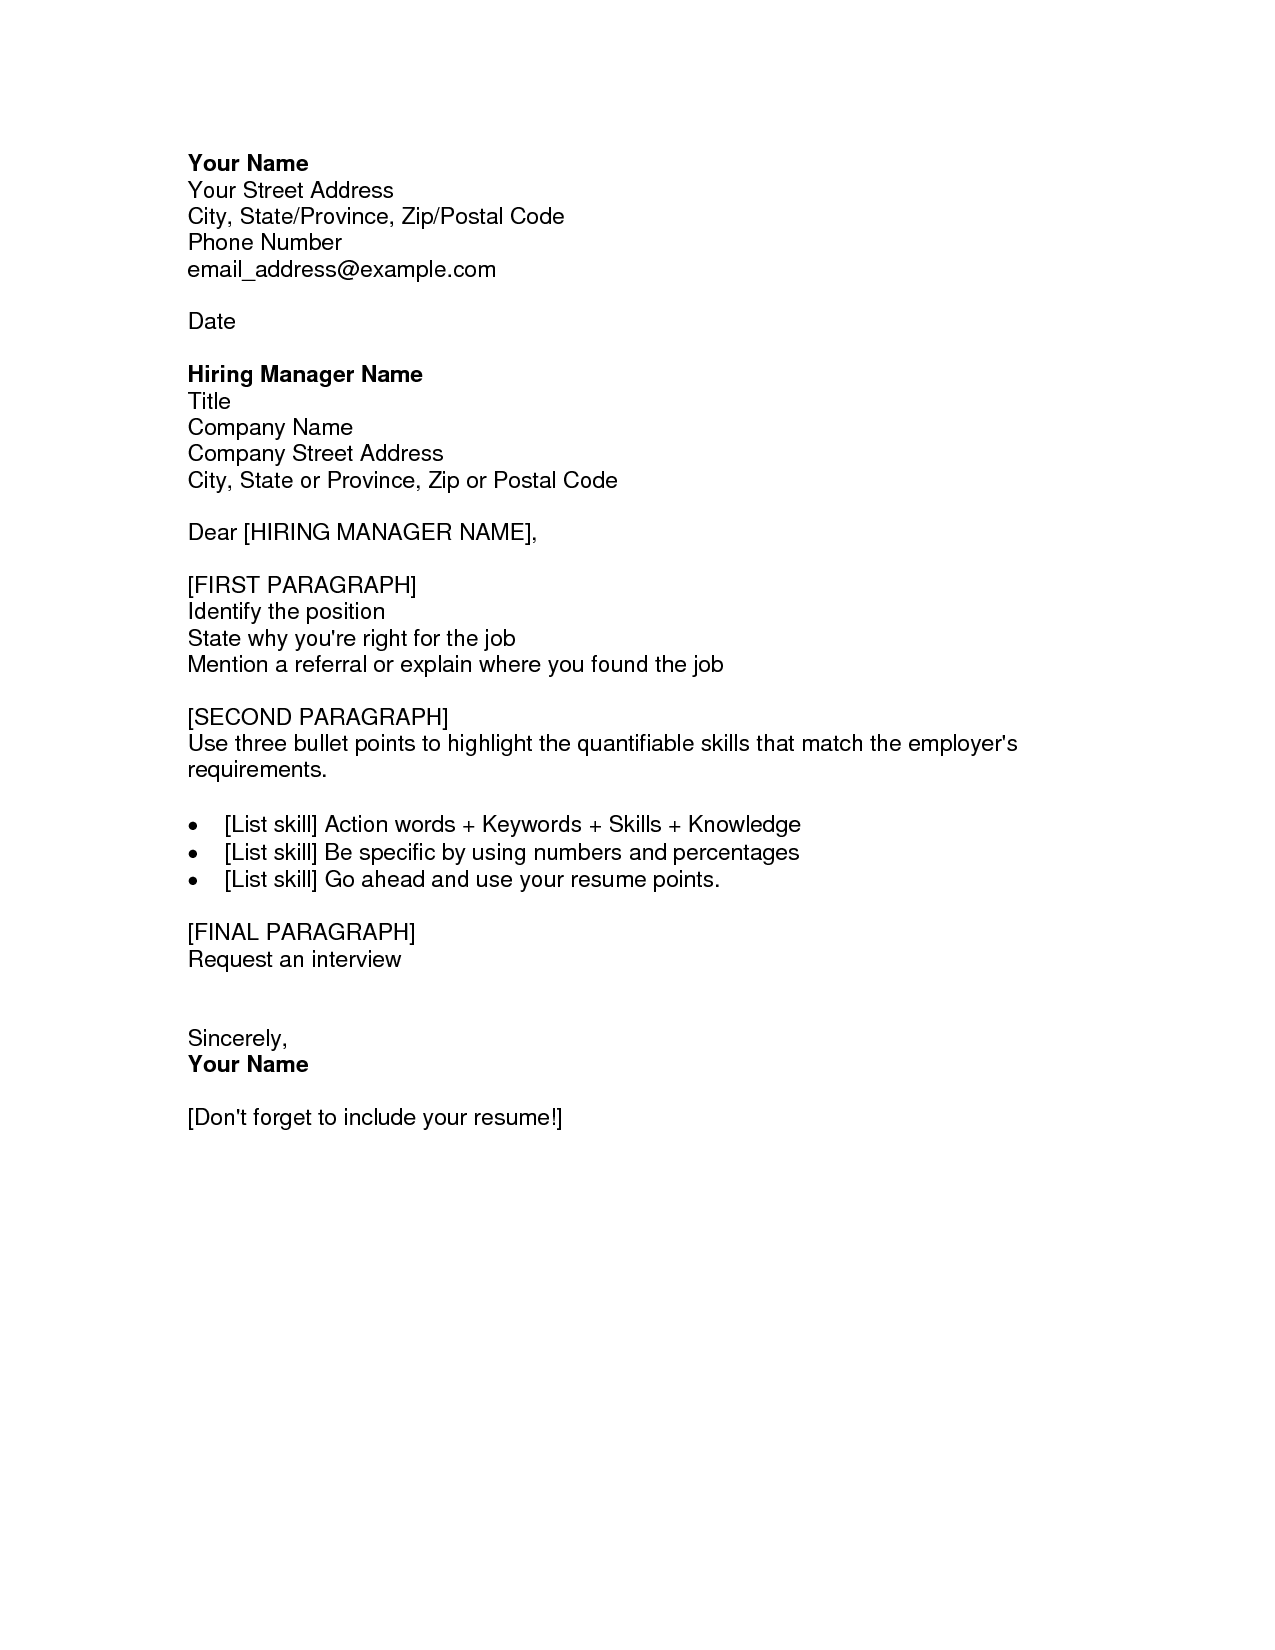 example of a resume cover letter resume cover letter examples fotolip rich image and 21565